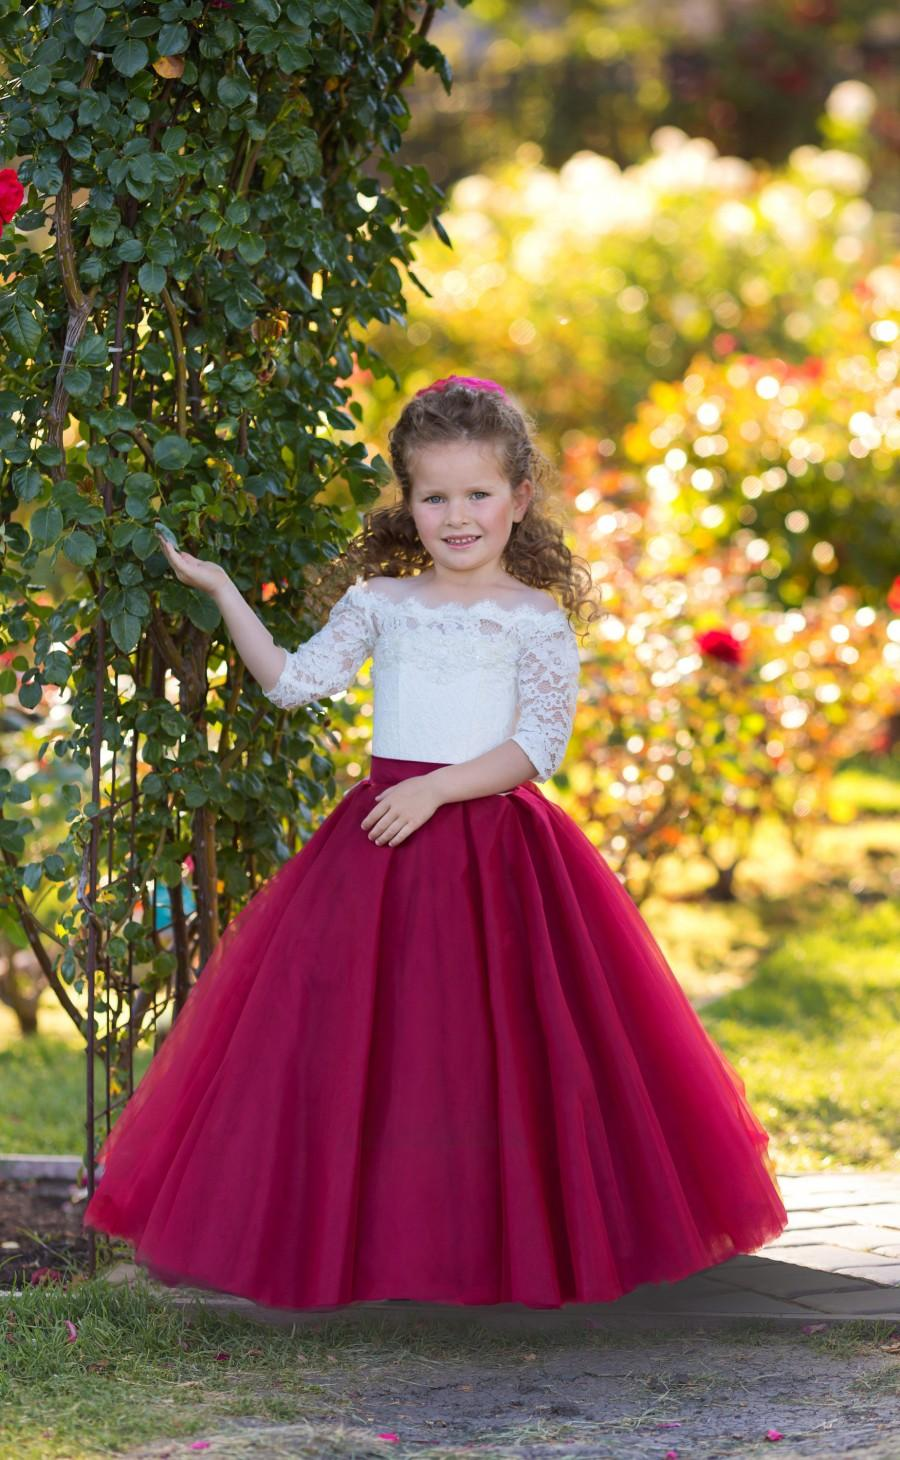 Flower Girl Dress Burgundy Wedding A-line Lace Girls Dress Ivory Lace Off  Shoulders Tulle Dress Fancy Dress Girls Party Dress Princess Dress 7a70813790d5